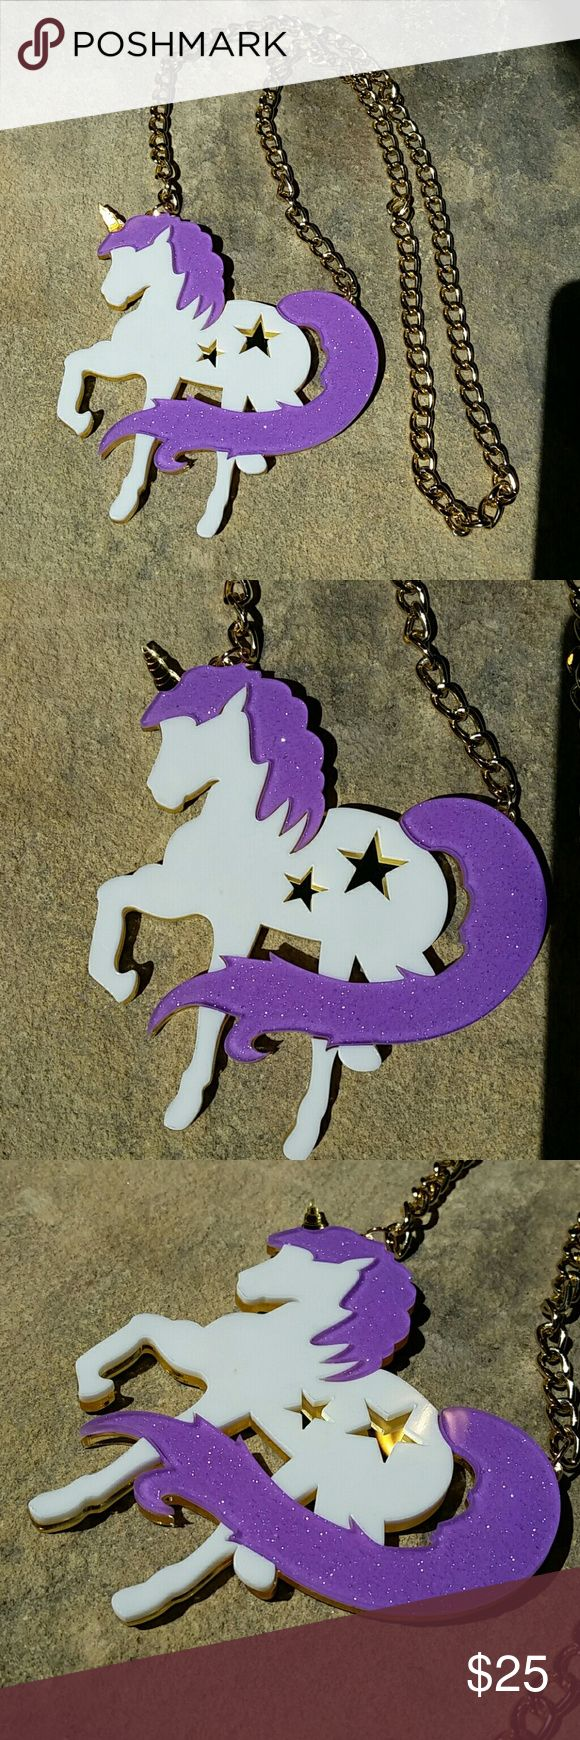 "HUGE Unicorn Laser Cut Fantasy Statement Necklace New without tags, HUGE lazer cut acrylic sparkly purple, white, & gold mirror necklace. Very Japanese street style, pastel punk/goth, a major statement and big trend this season! The horn and star cutouts are reflective mirror gold, the back mirror silver, both sides still have protective film on them (blue film on back) to peel off before wearing. Chain is 28"", unicorn 4"" wide, 4"" tall.  Thank you for visiting my closet, and happy poshing…"